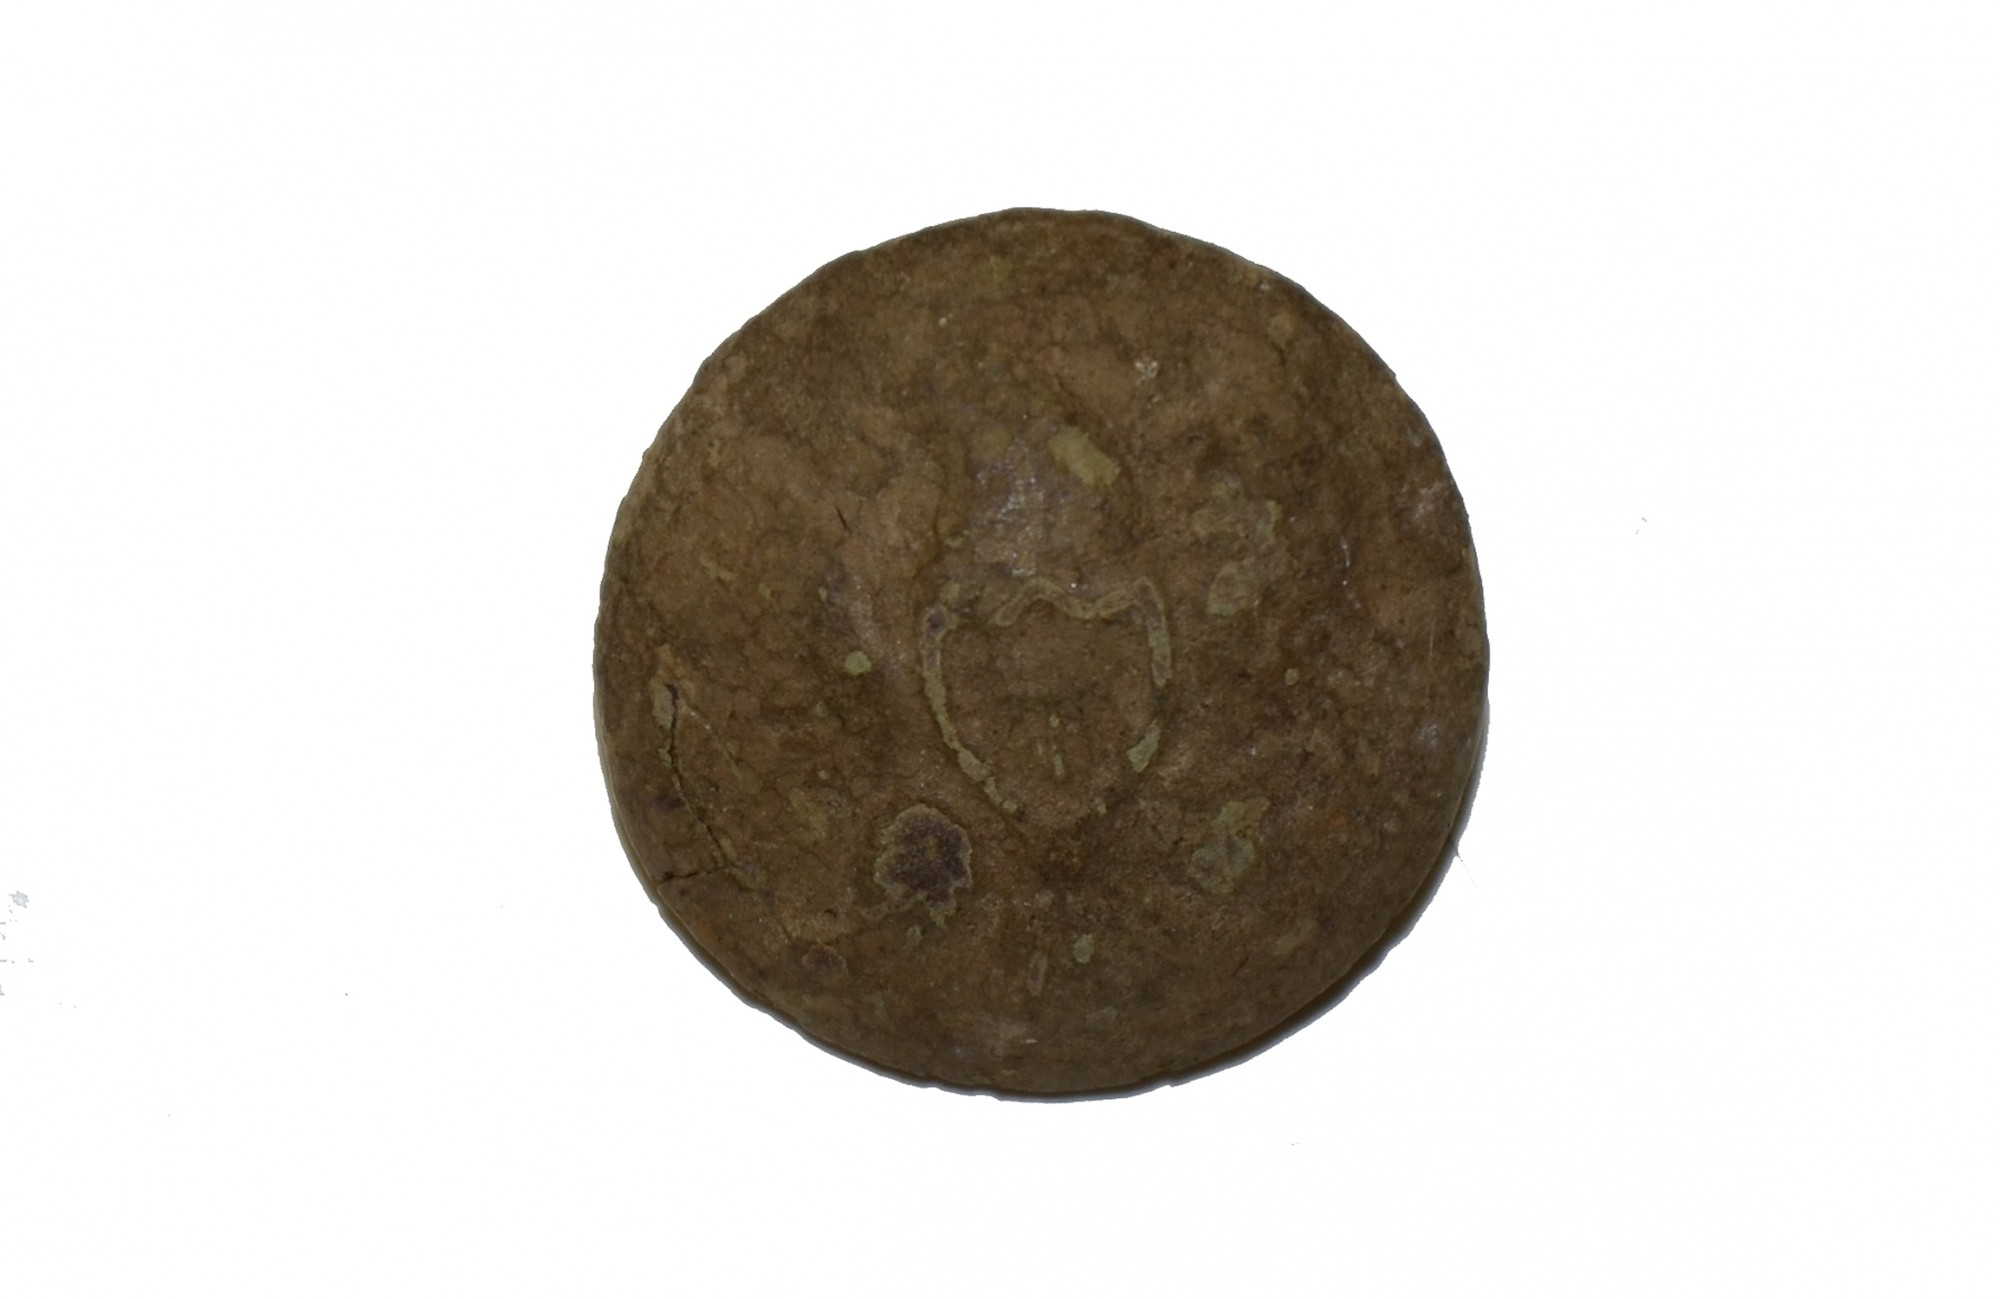 EAGLE COAT BUTTON RECOVERED NEAR CULP'S HILL